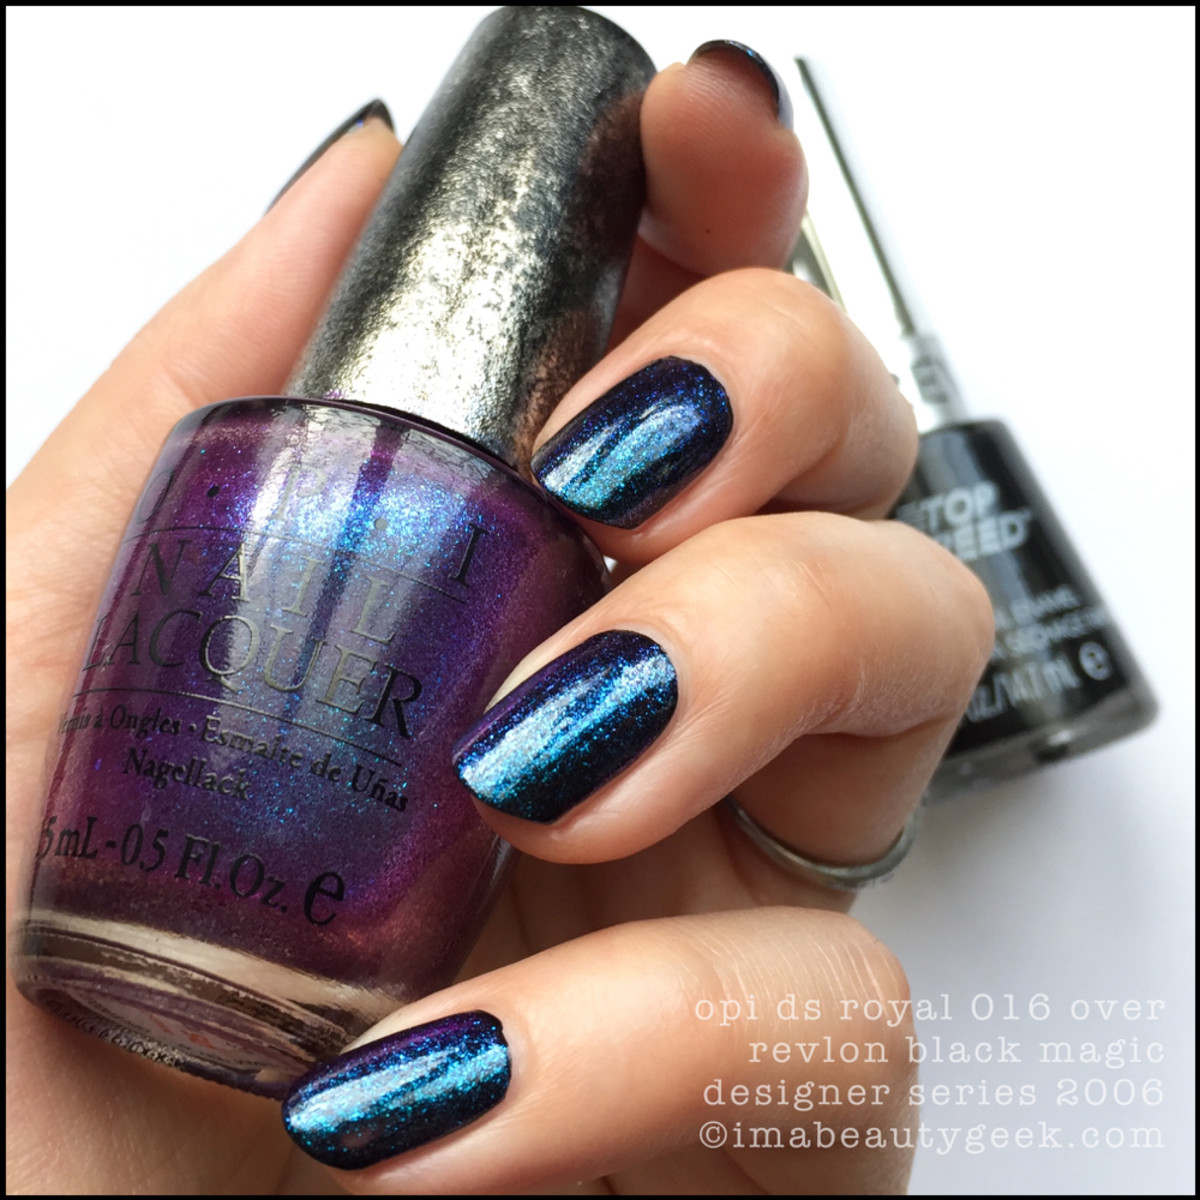 OPI Designer Series Royal 016 over Black_1